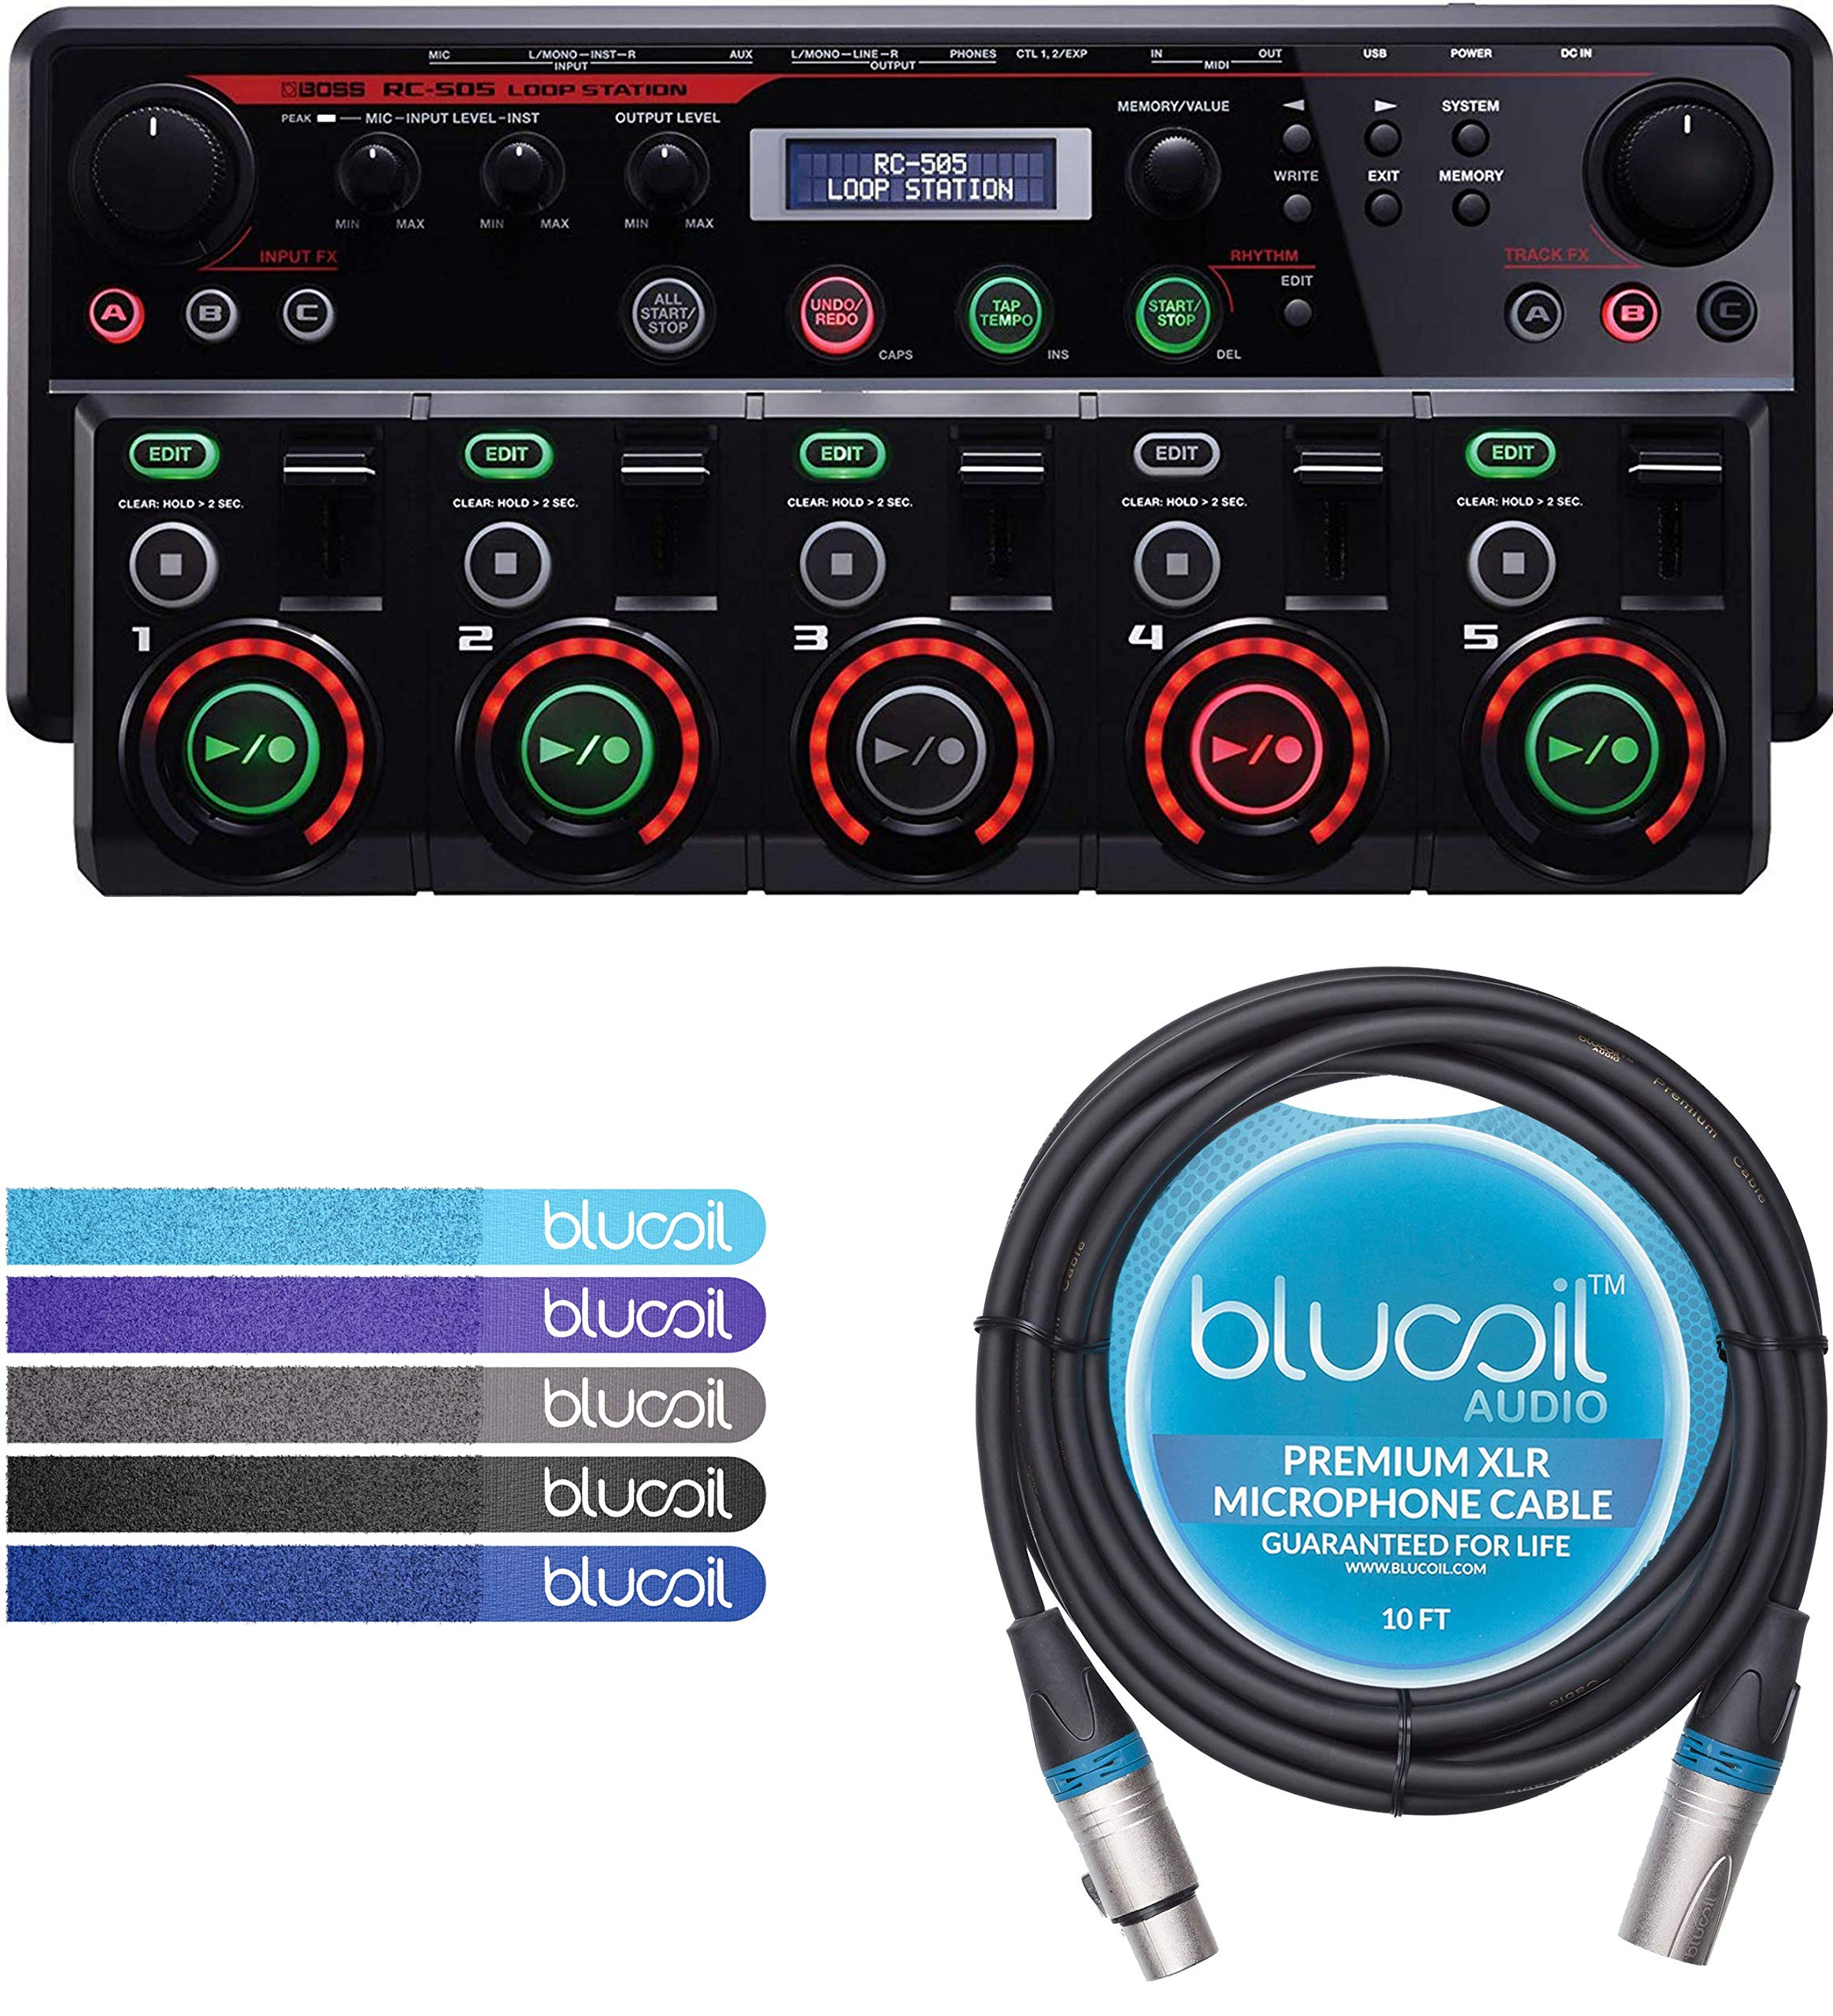 BOSS RC-505 Loop Station Bundle with Blucoil 10-FT XLR Microphone Cable and 5-Pack of Reusable Cable Ties